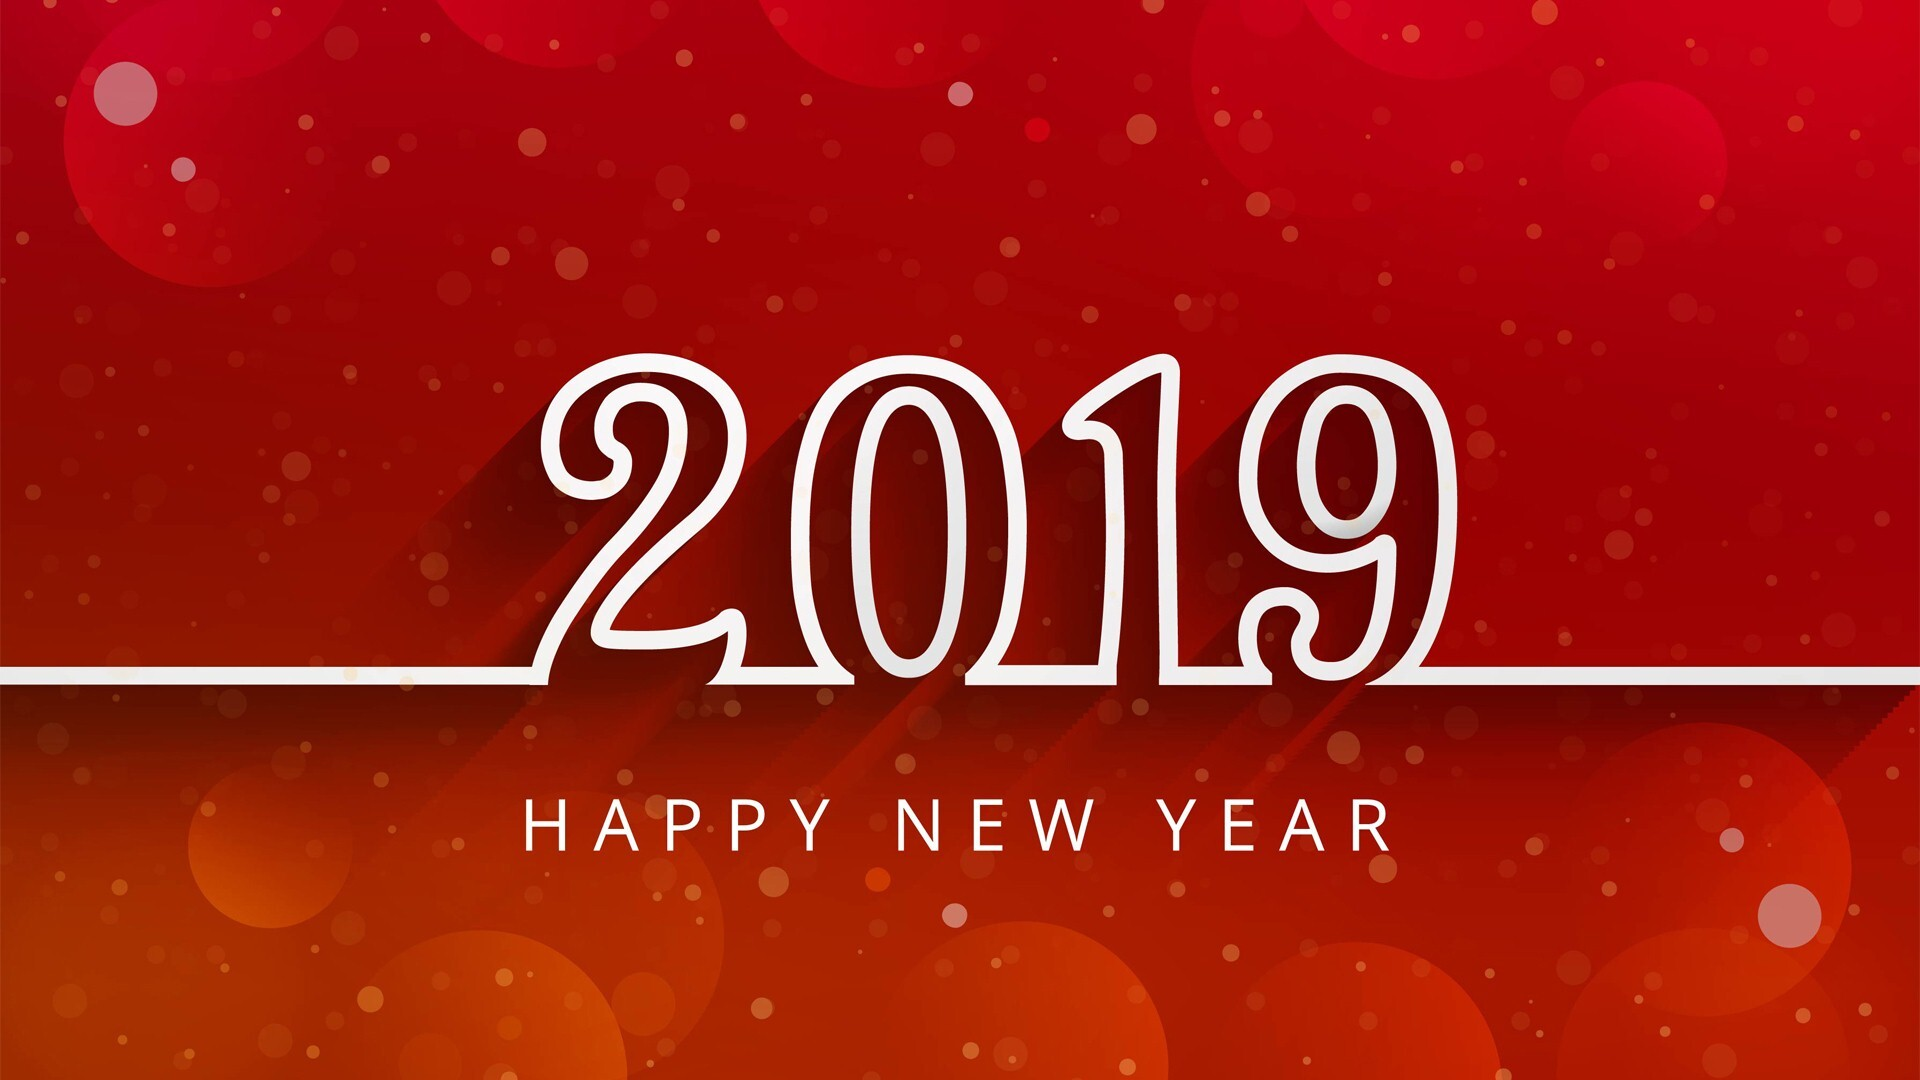 Beautiful New Year 2019 Red Hd Wallpaper Hd Wallpapers